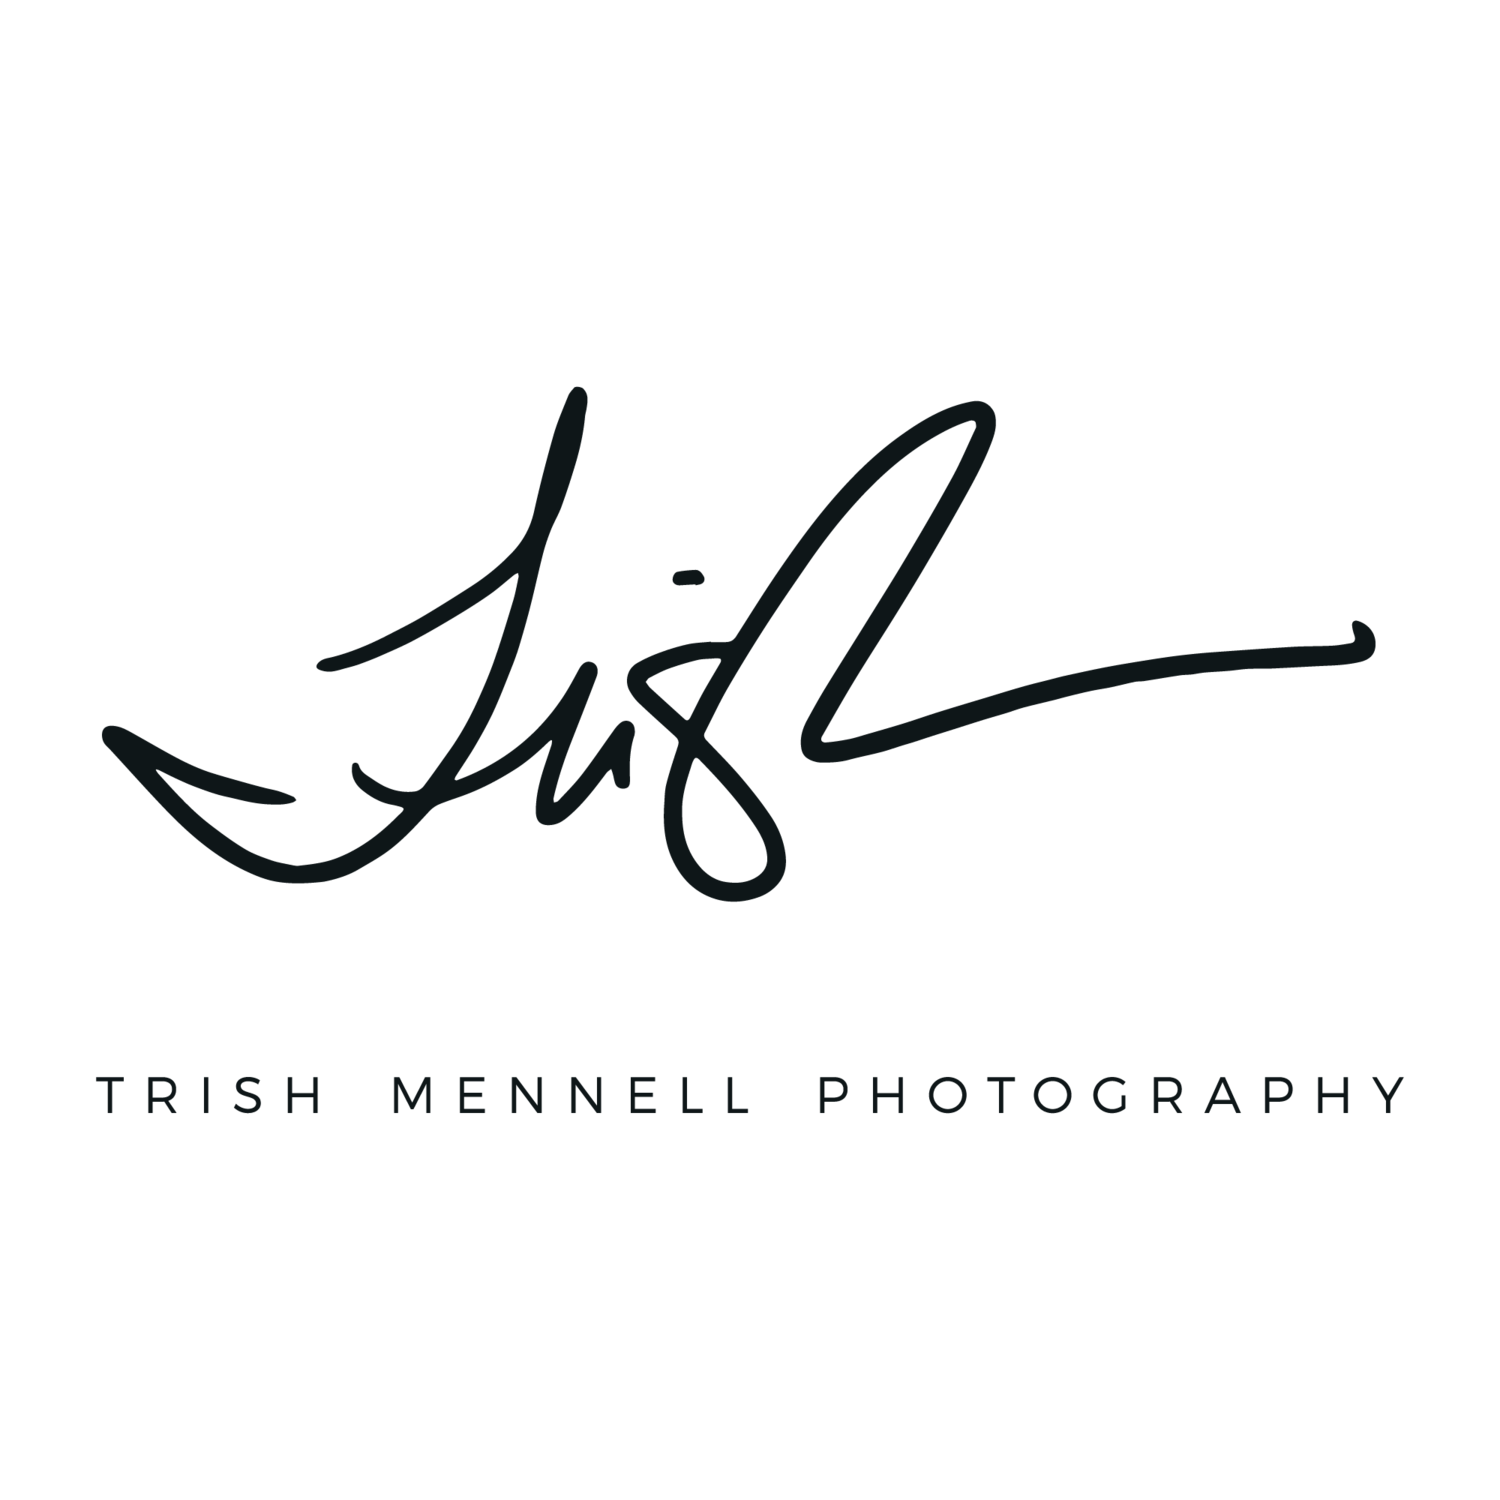 Trish Mennell Photography